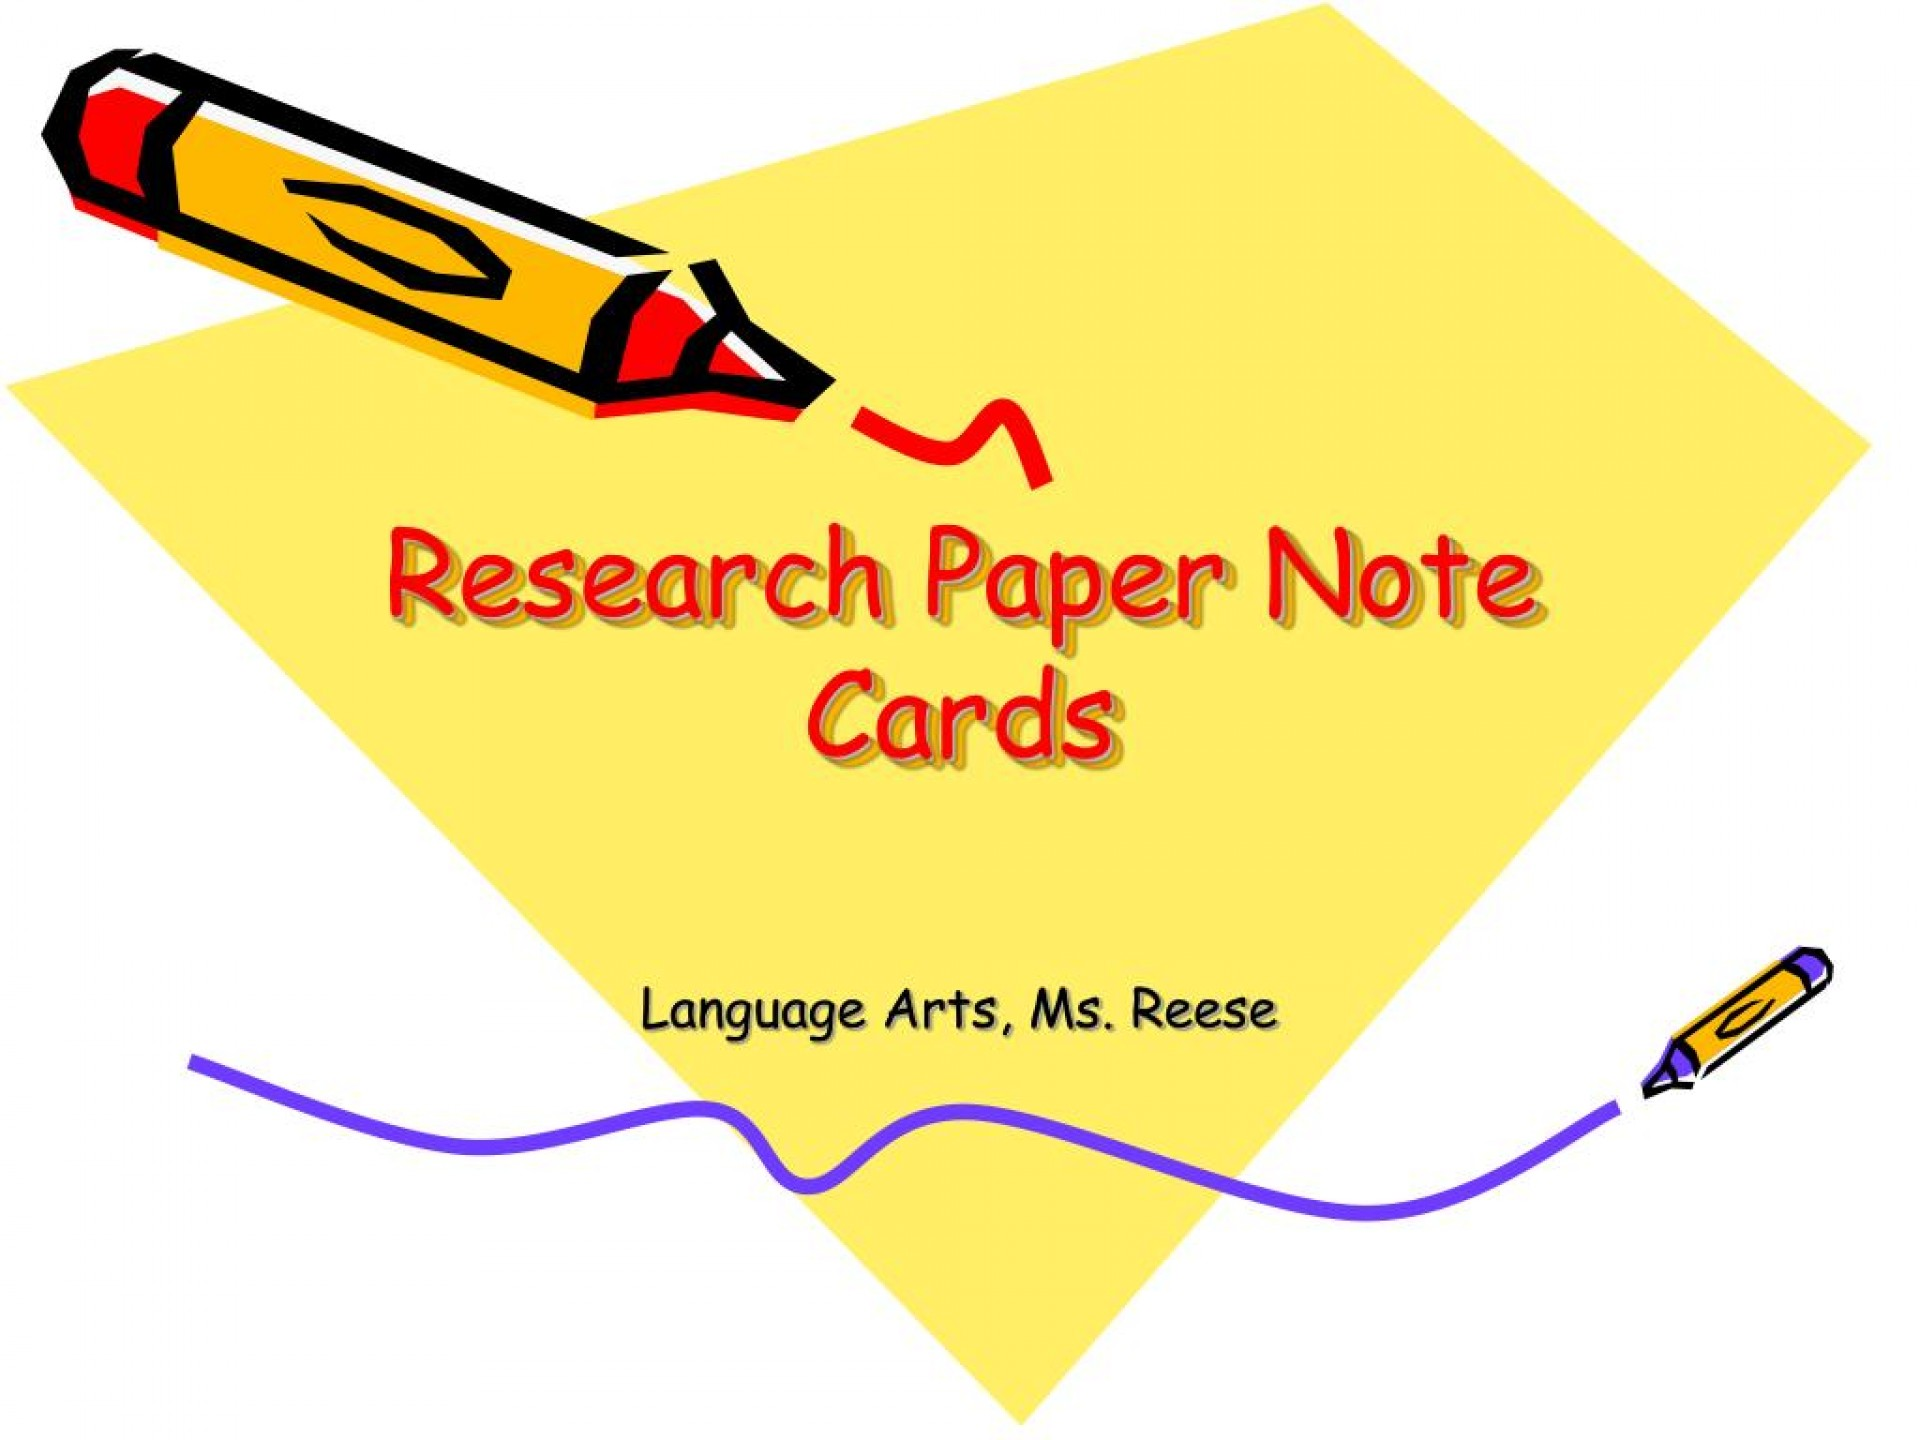 012 Research Paper Note Cards L Rare For Taking Papers Card System Example Of Notecards 1920